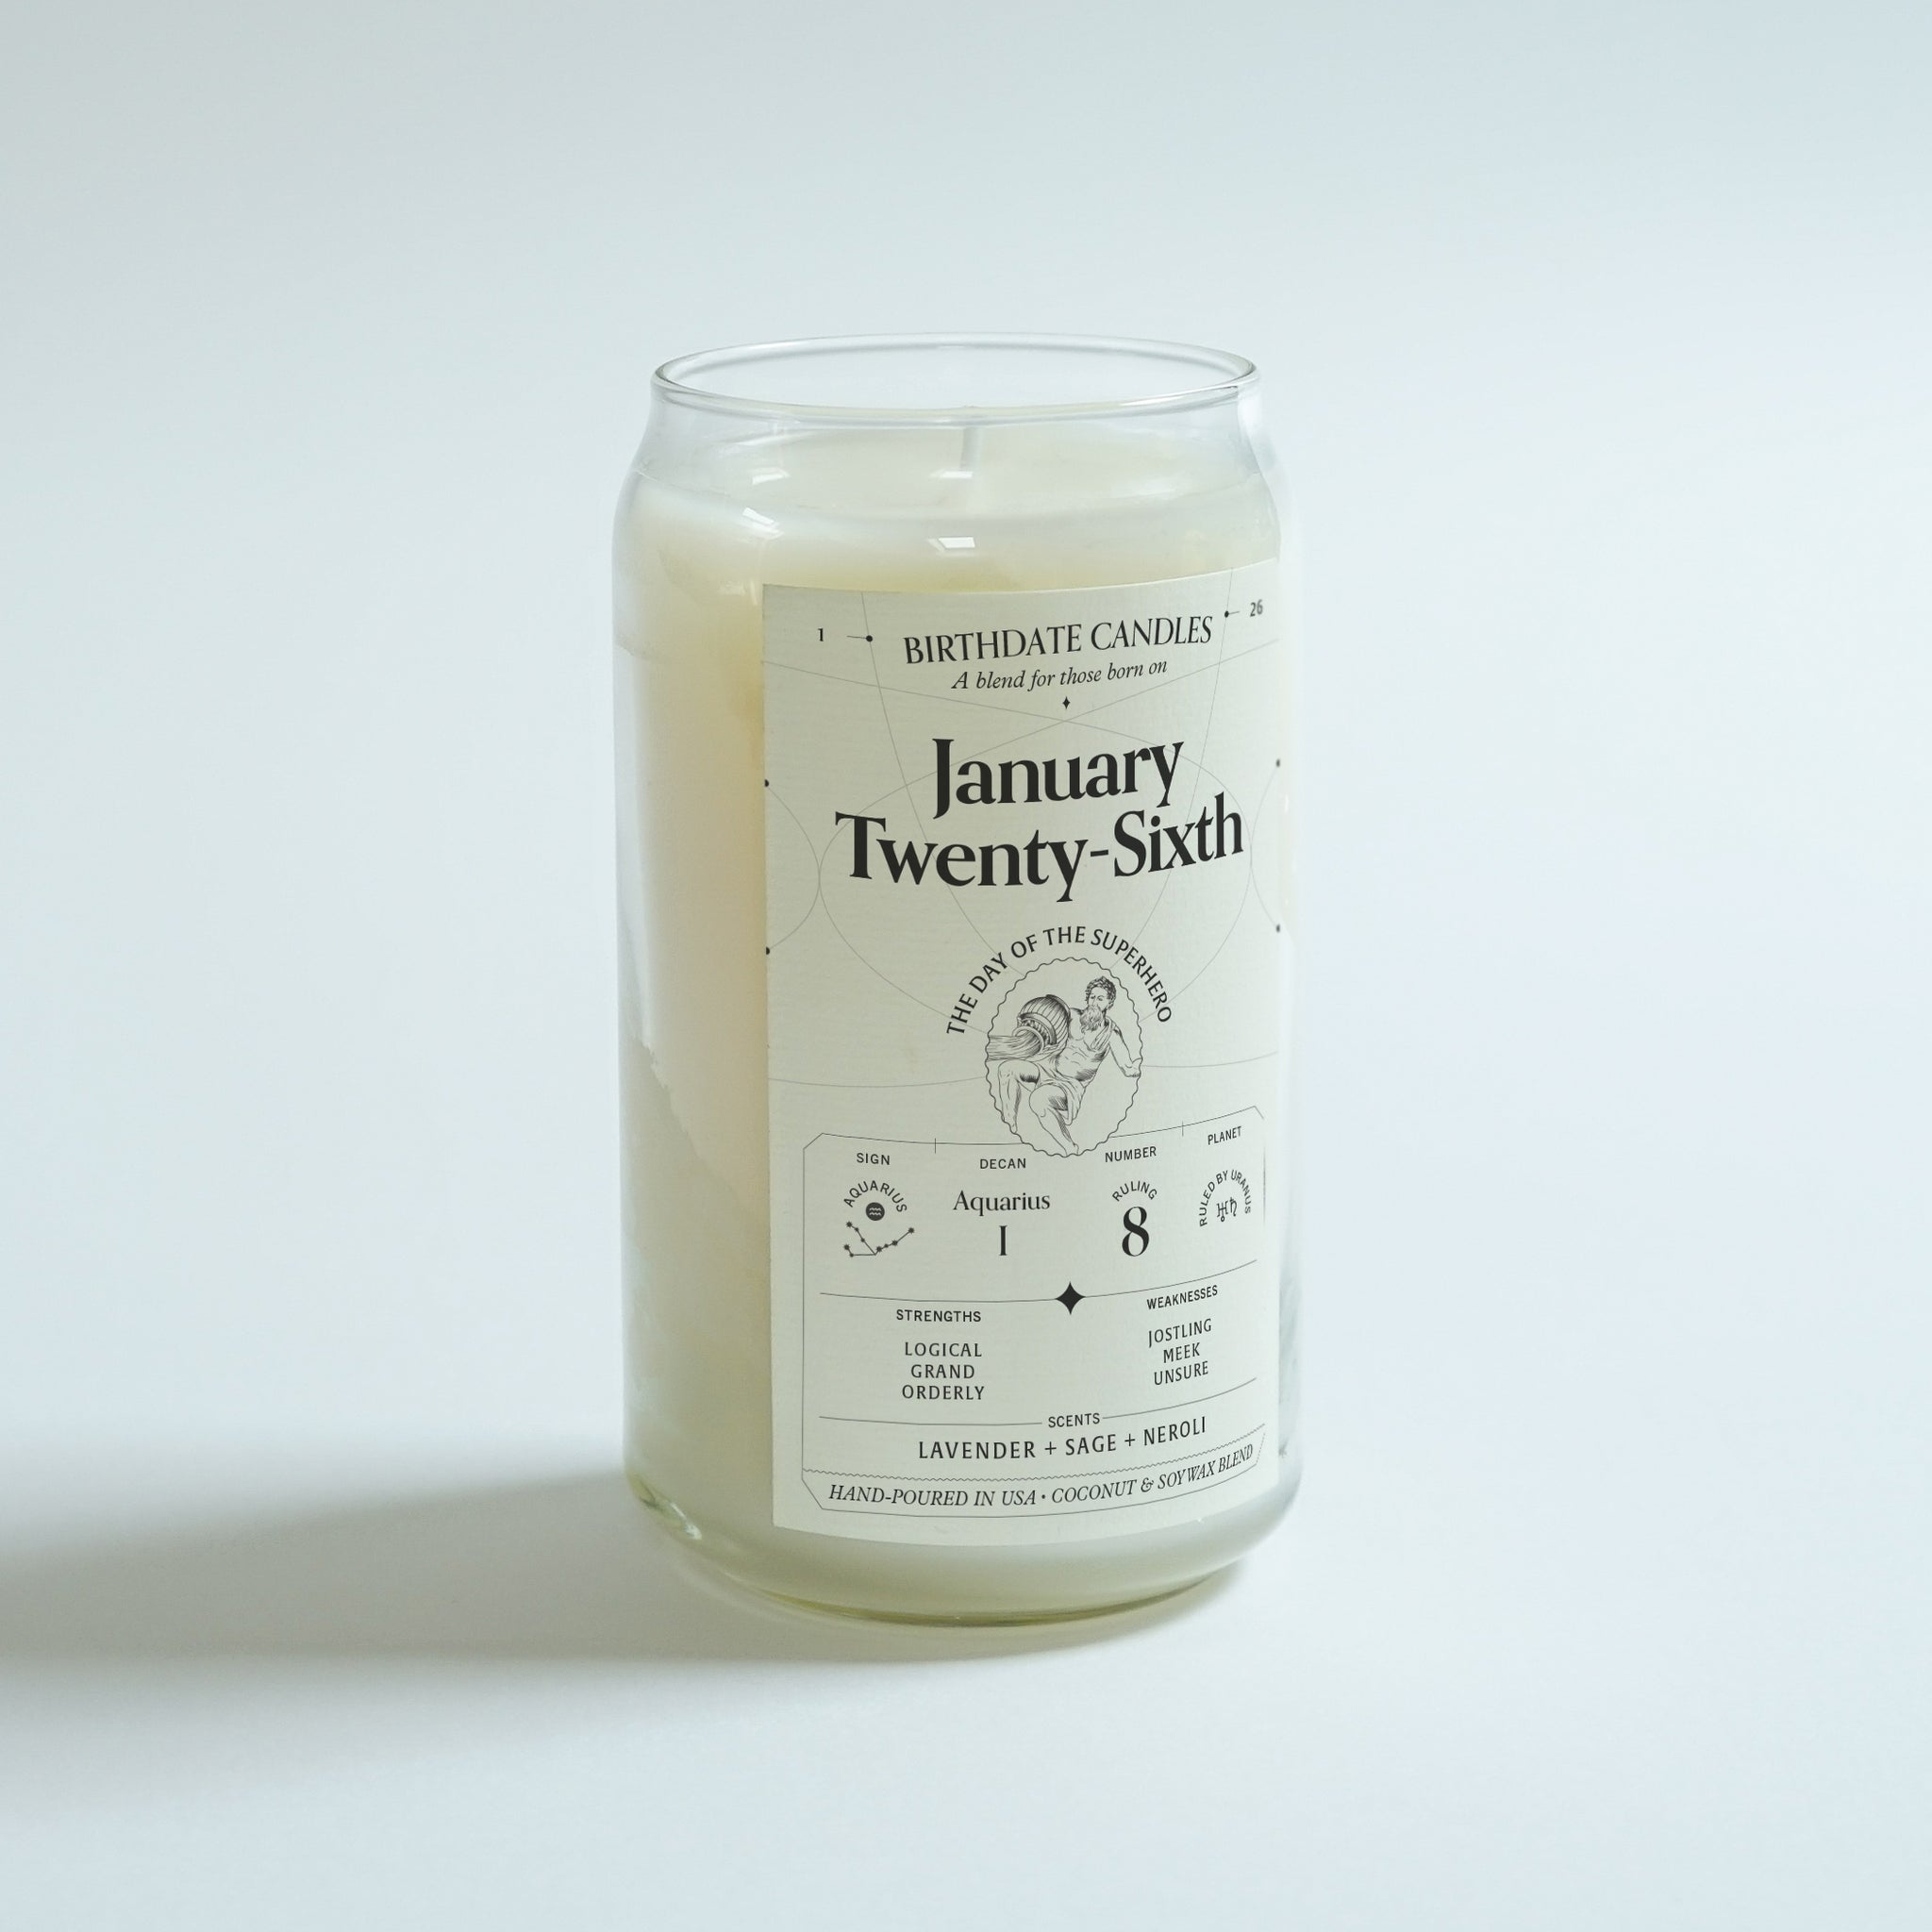 The January Twenty-Sixth Birthday Candle